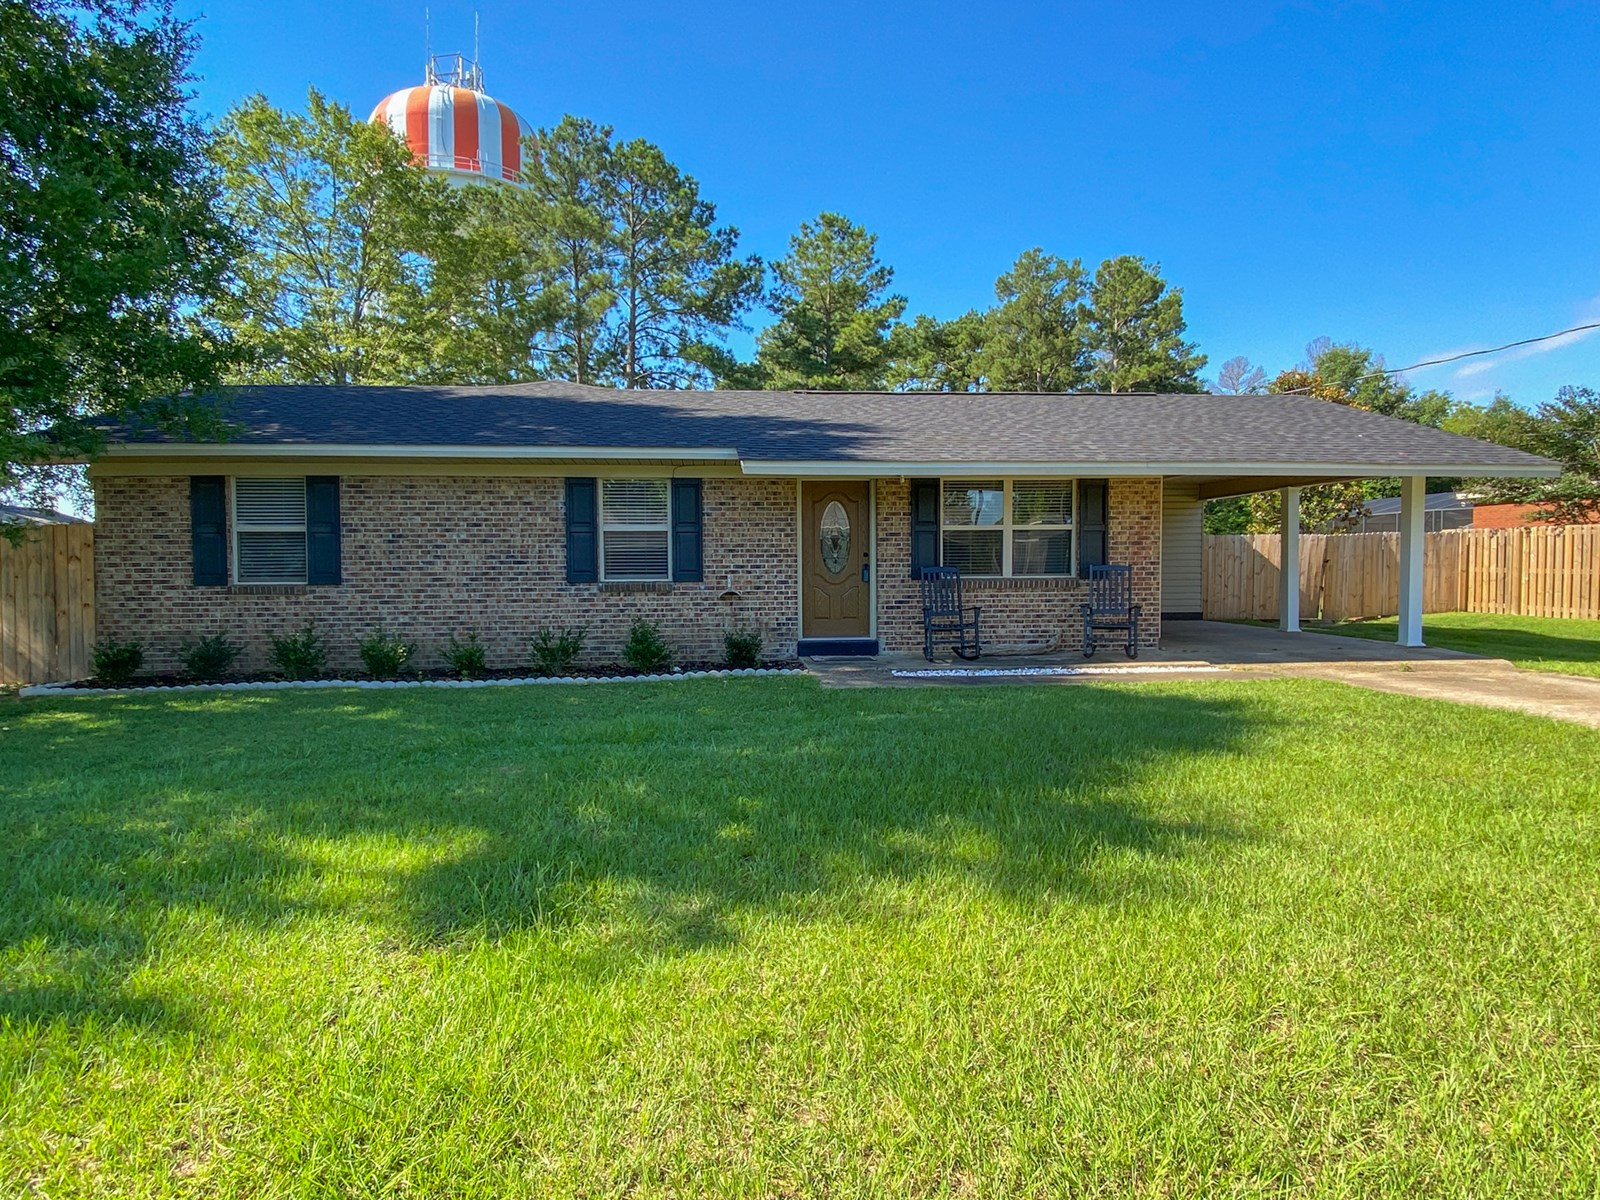 Home for Sale in town w/ 4 bedrooms/2.5 bathrooms Geneva, AL